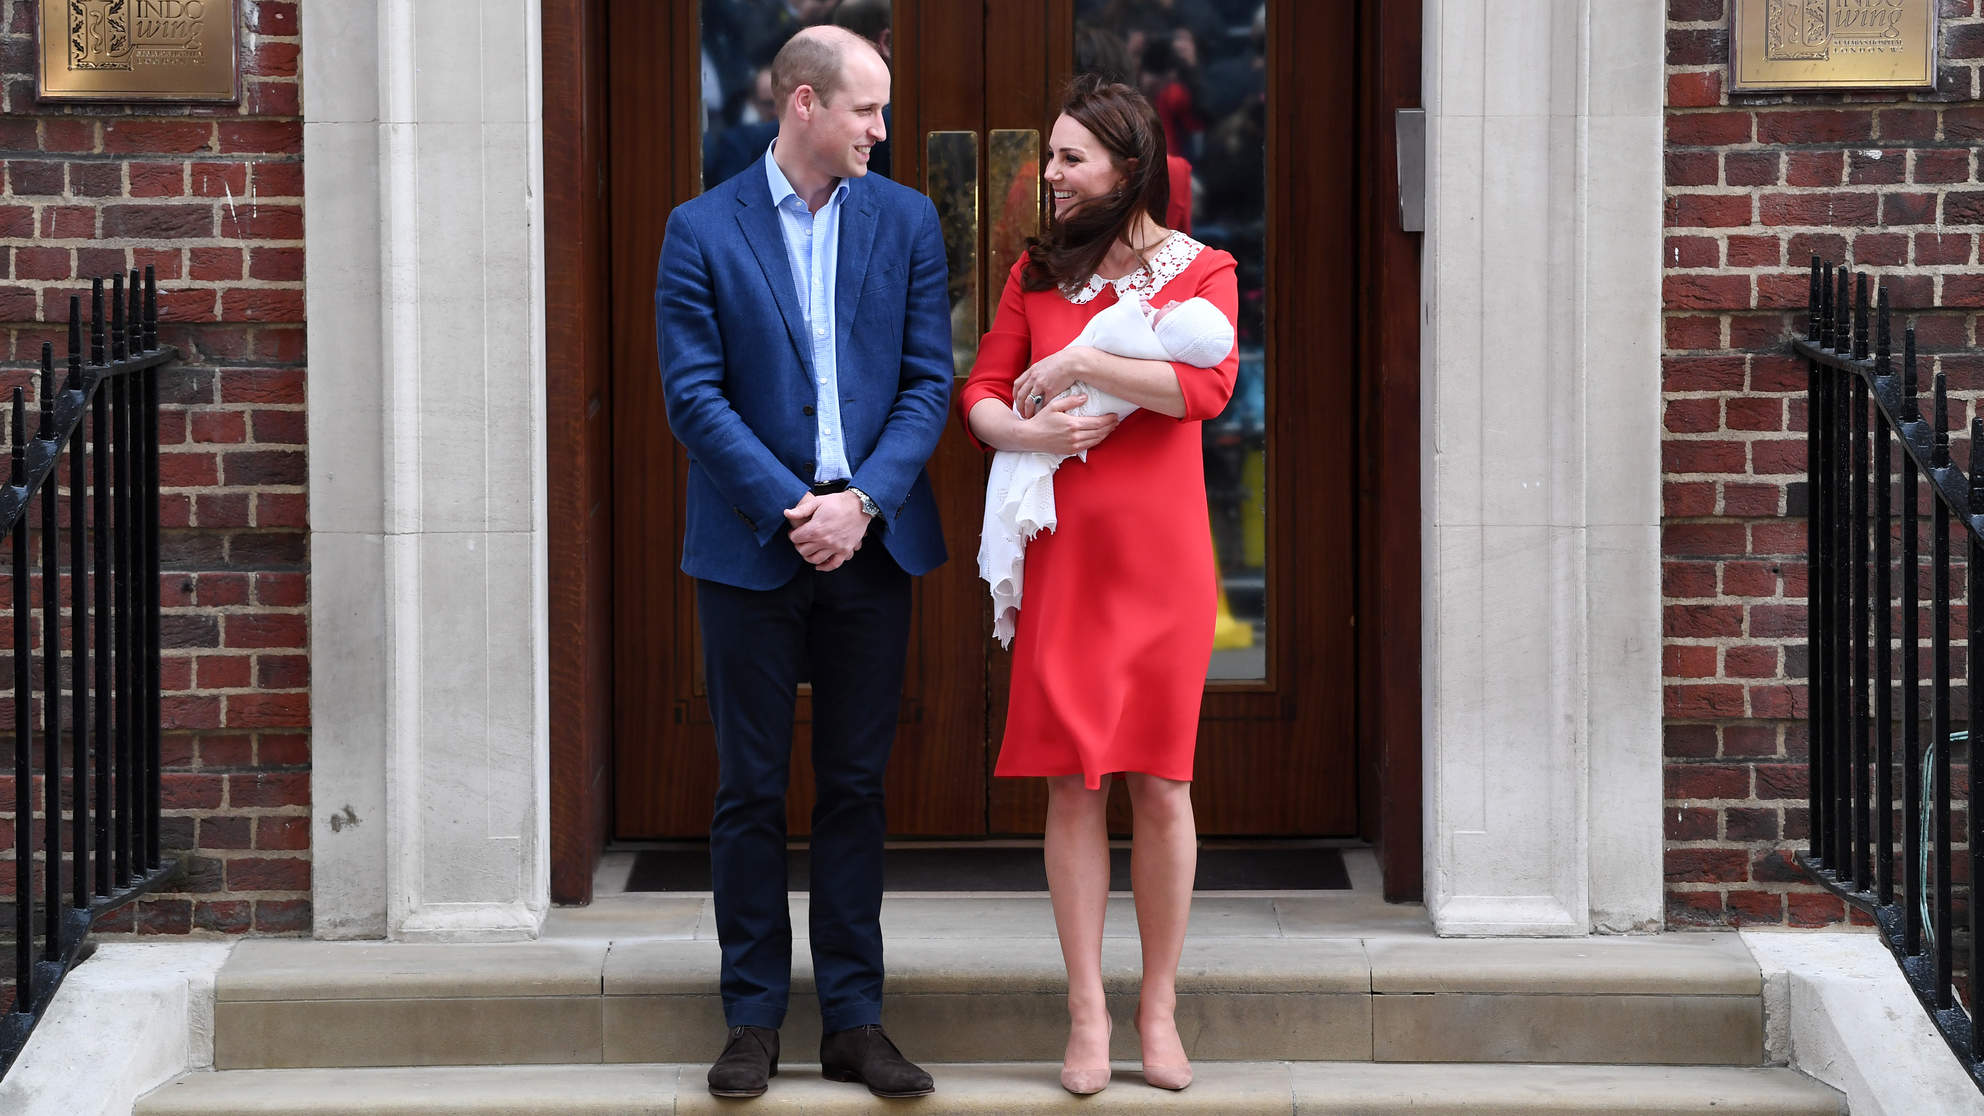 Prince William Might Have Just Hinted at the New Royal Baby's Name